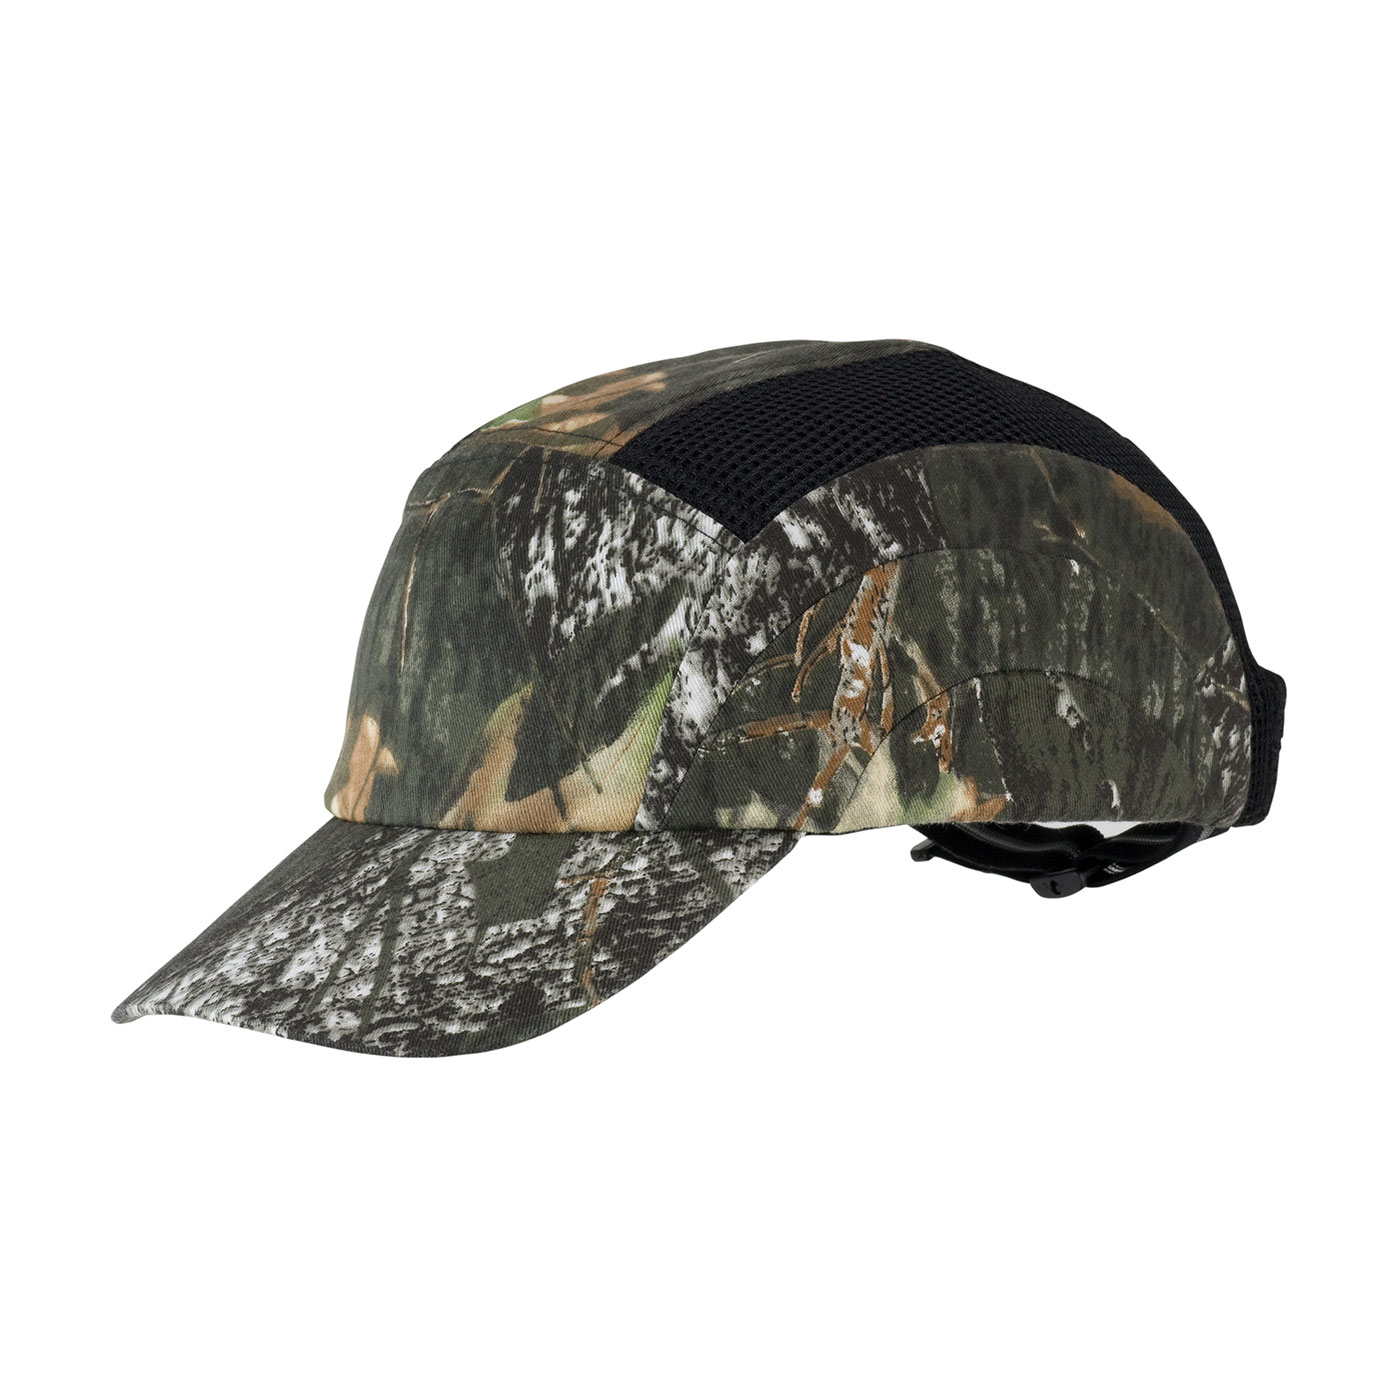 Camouflage Baseball Style Bump Cap with HDPE Protective Liner and Adjustable Back, Camouflage, OS